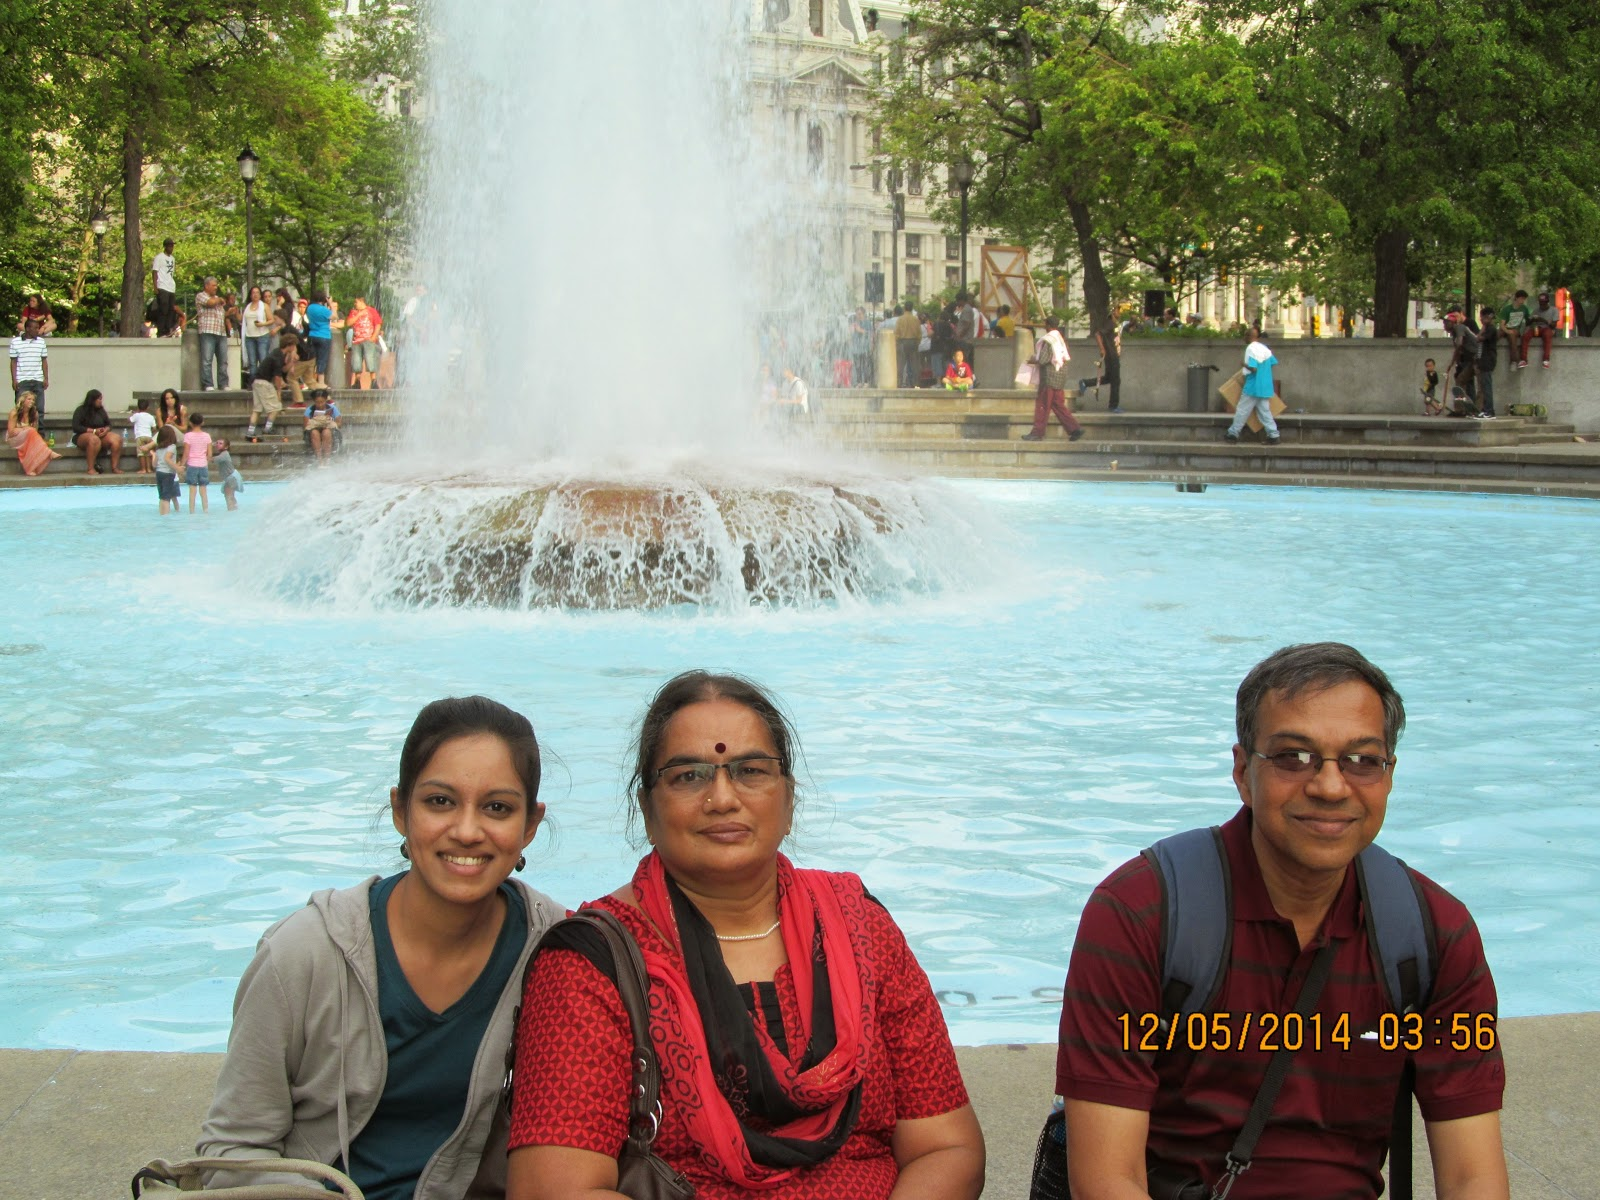 Chilling with my folks in Philly after my thesis defense.